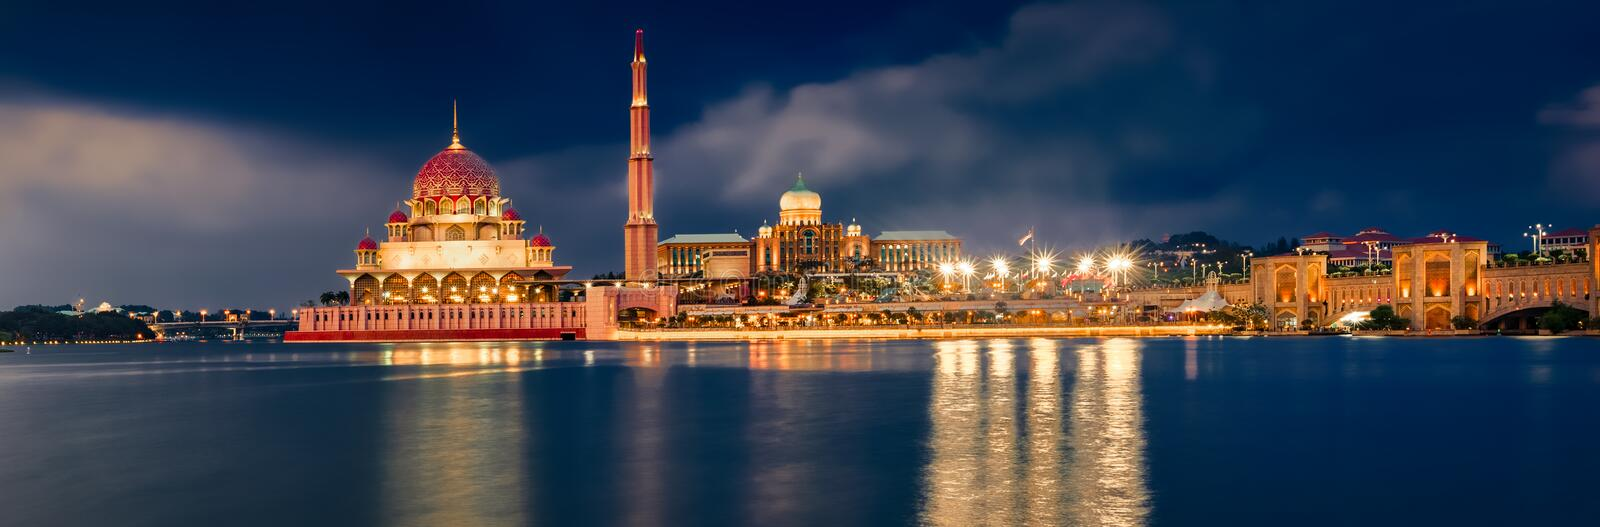 Putrajaya skyline at night. Amazing view of Putra mosque. Panorama. Putrajaya skyline. Amazing view of Putra mosque, Perdana Putra and Putra bridge at night time stock photos